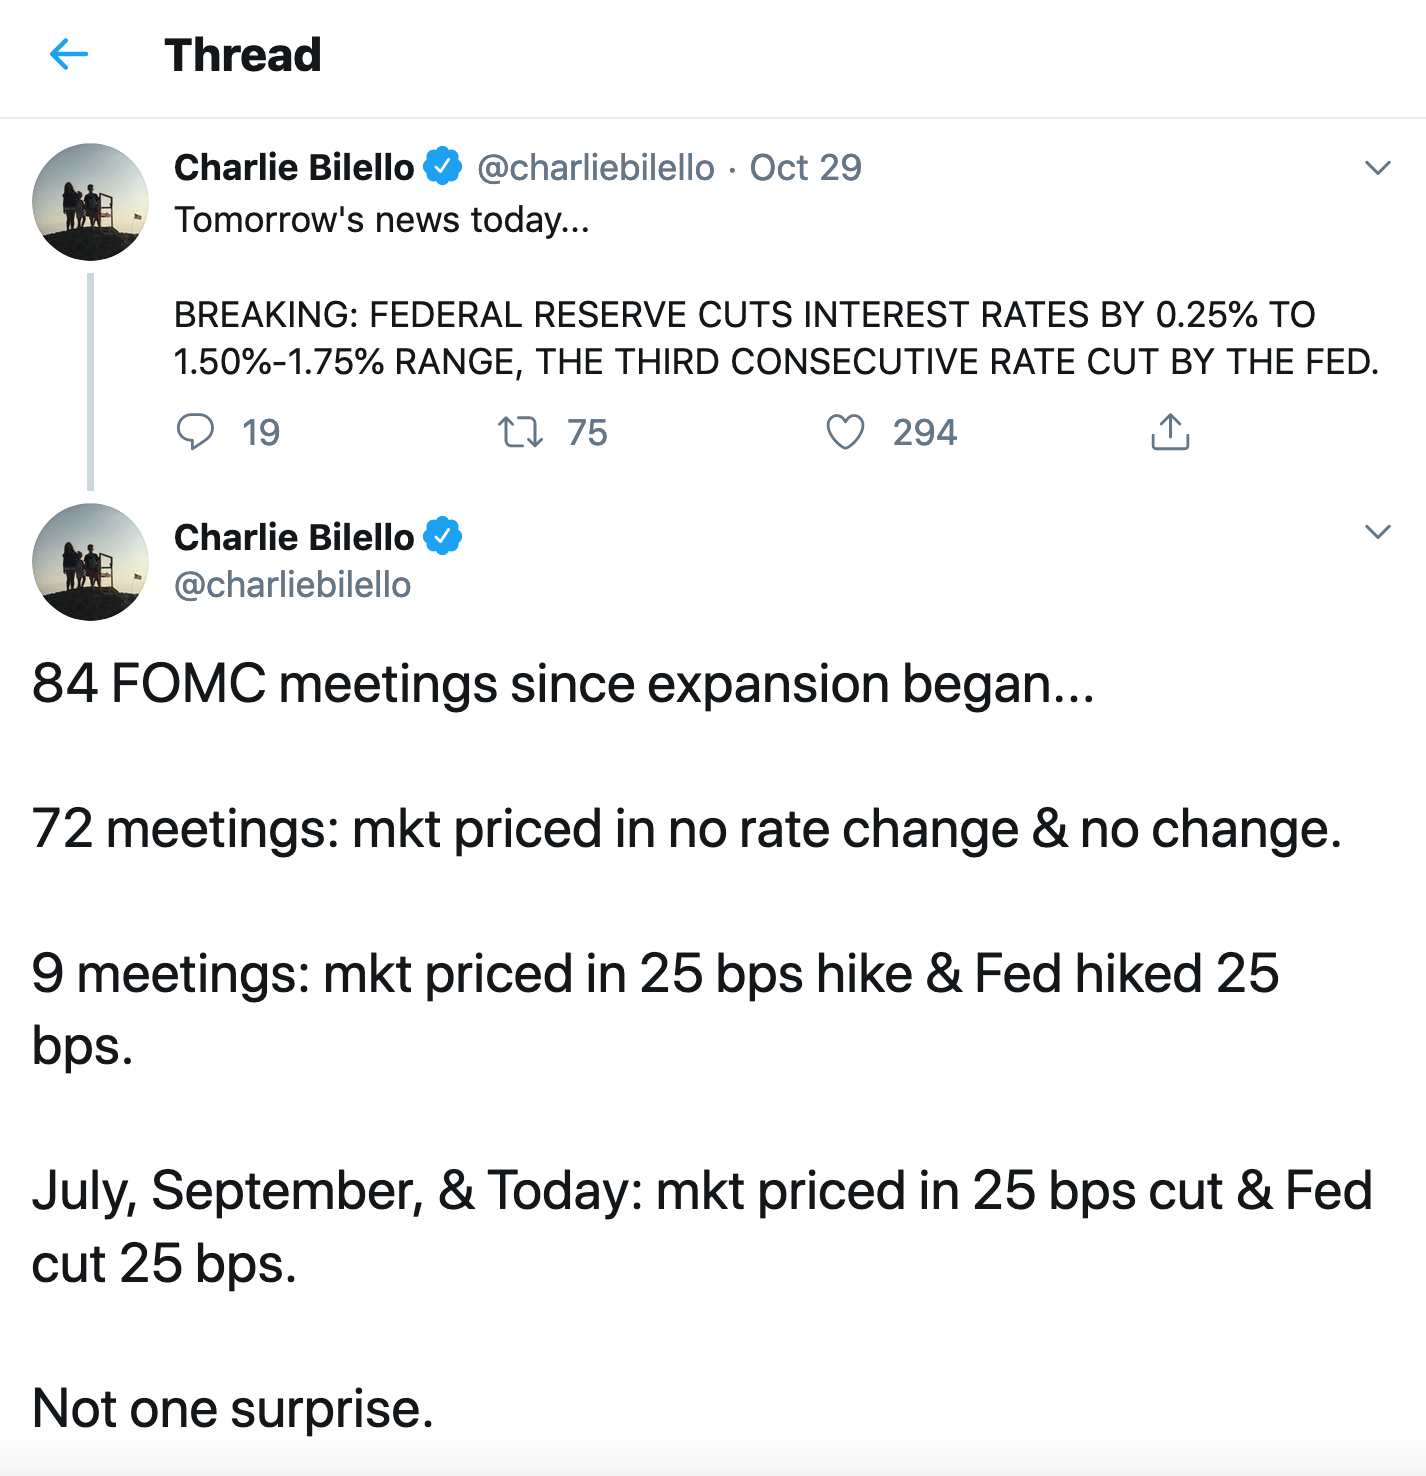 A tweet from Twitter user Charlie Bilello showing that the Fed has not surprised the market since the economic expansion began.